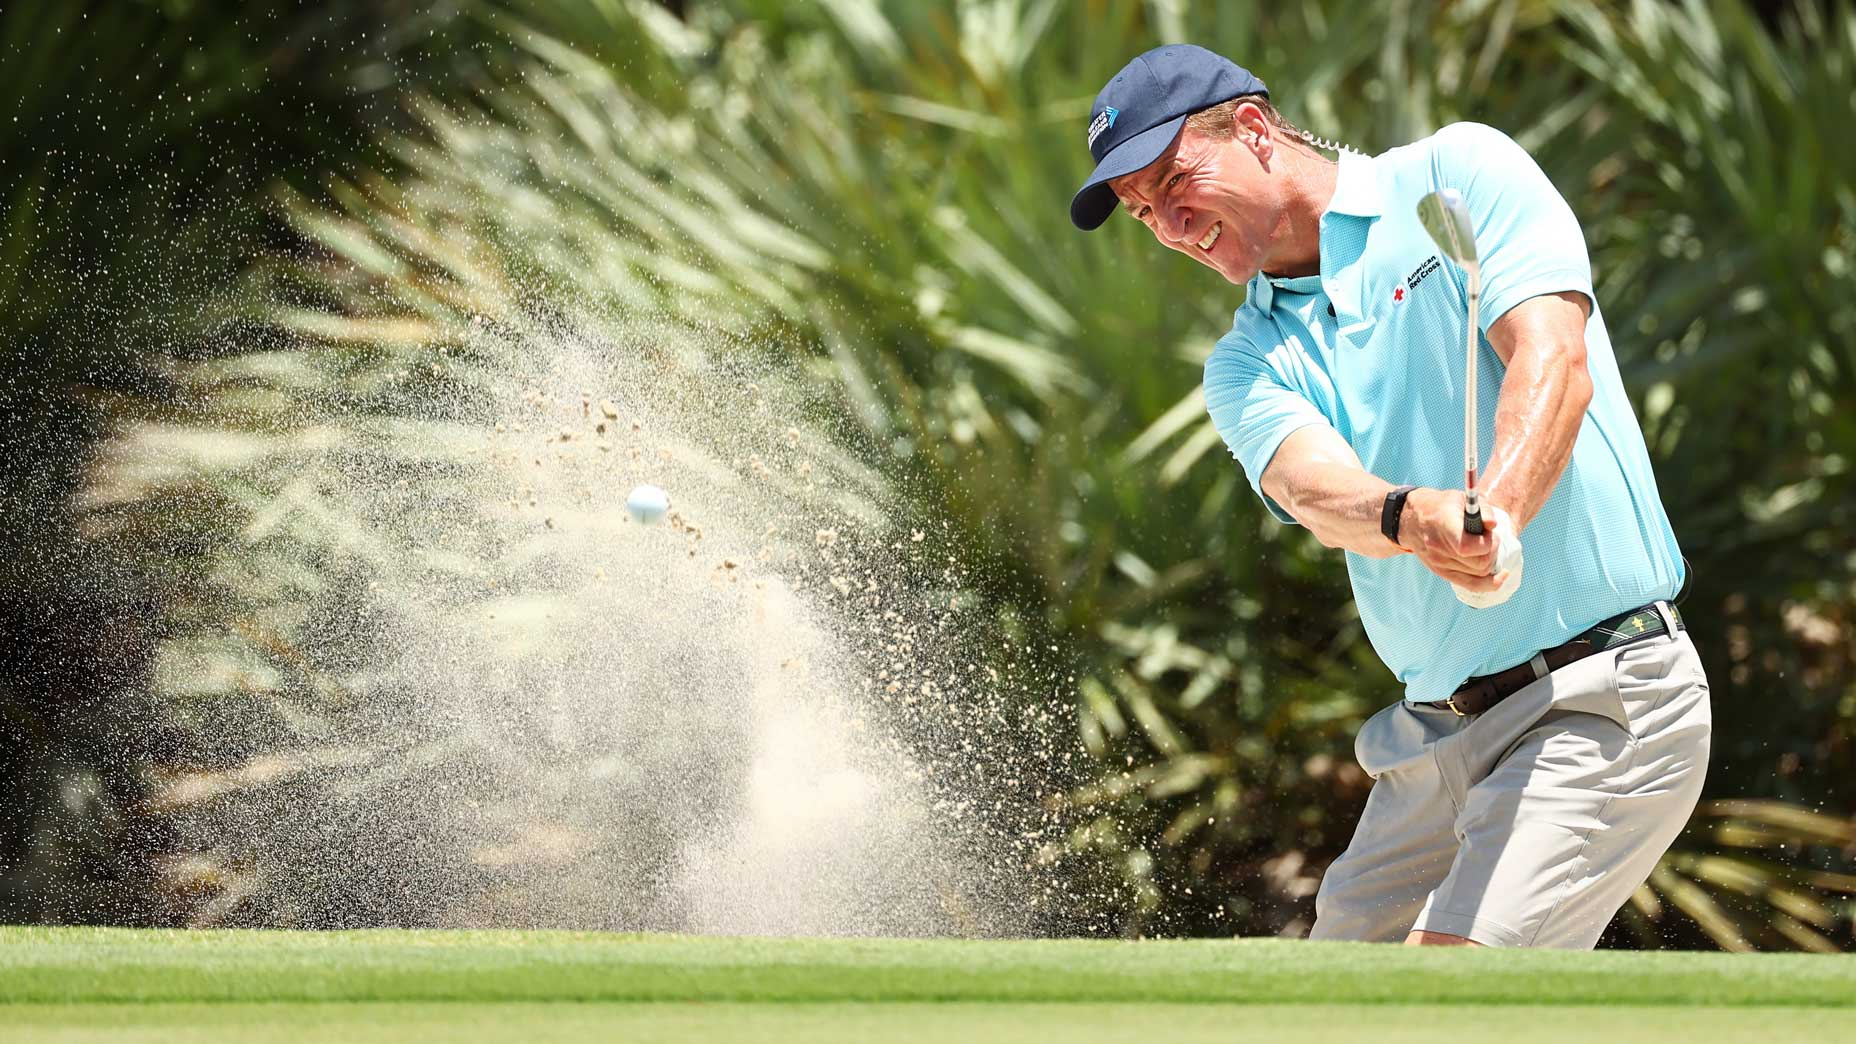 Peyton Manning hits out of a sand trap during a practice round on Saturday.